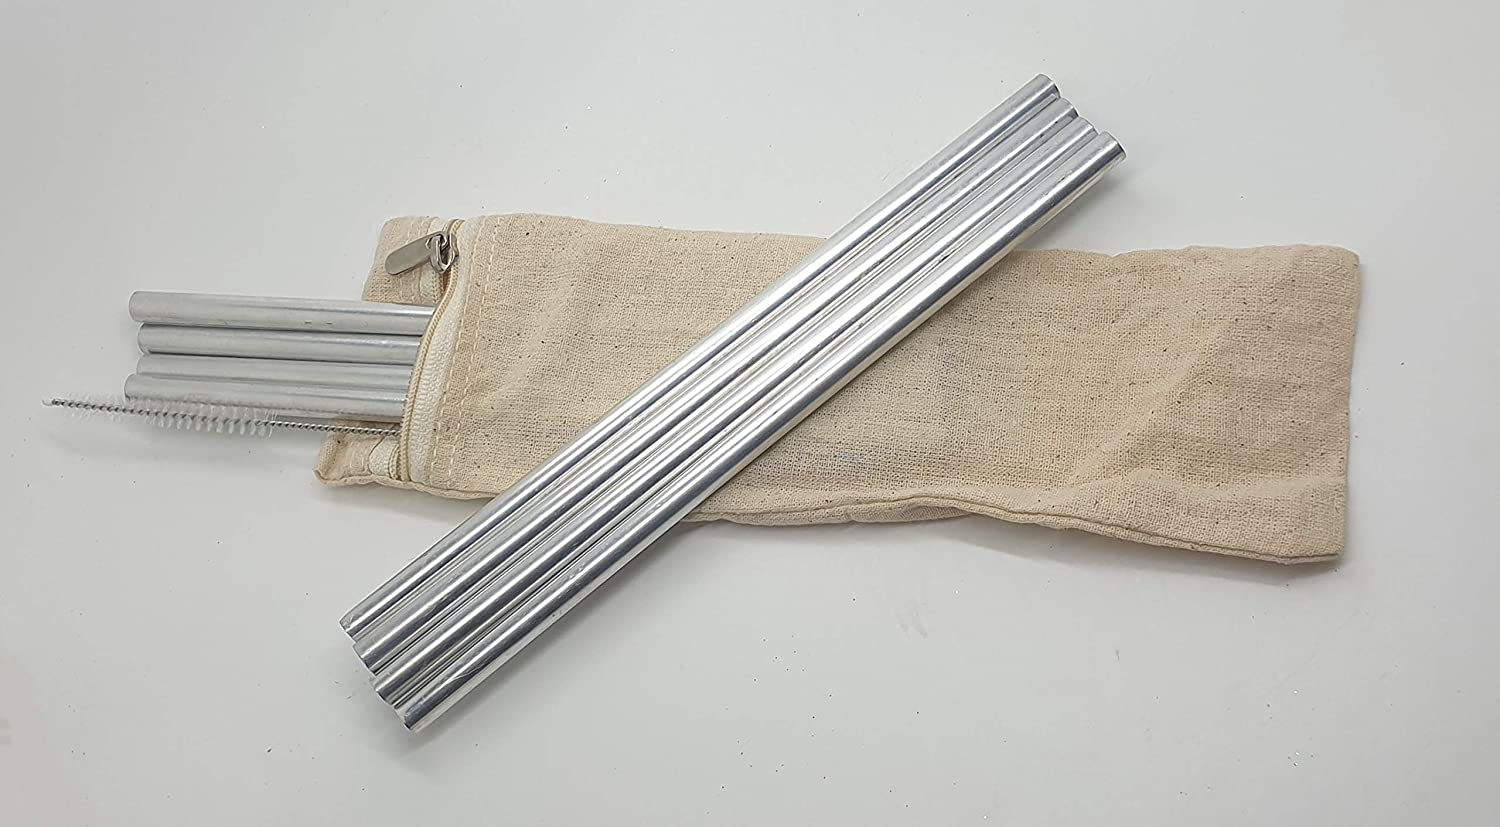 Various VIE Aluminium Reusable Drinking Straws-20cm One Set of 4 with Cleaning Brush /& a Zipper Cotton Bag